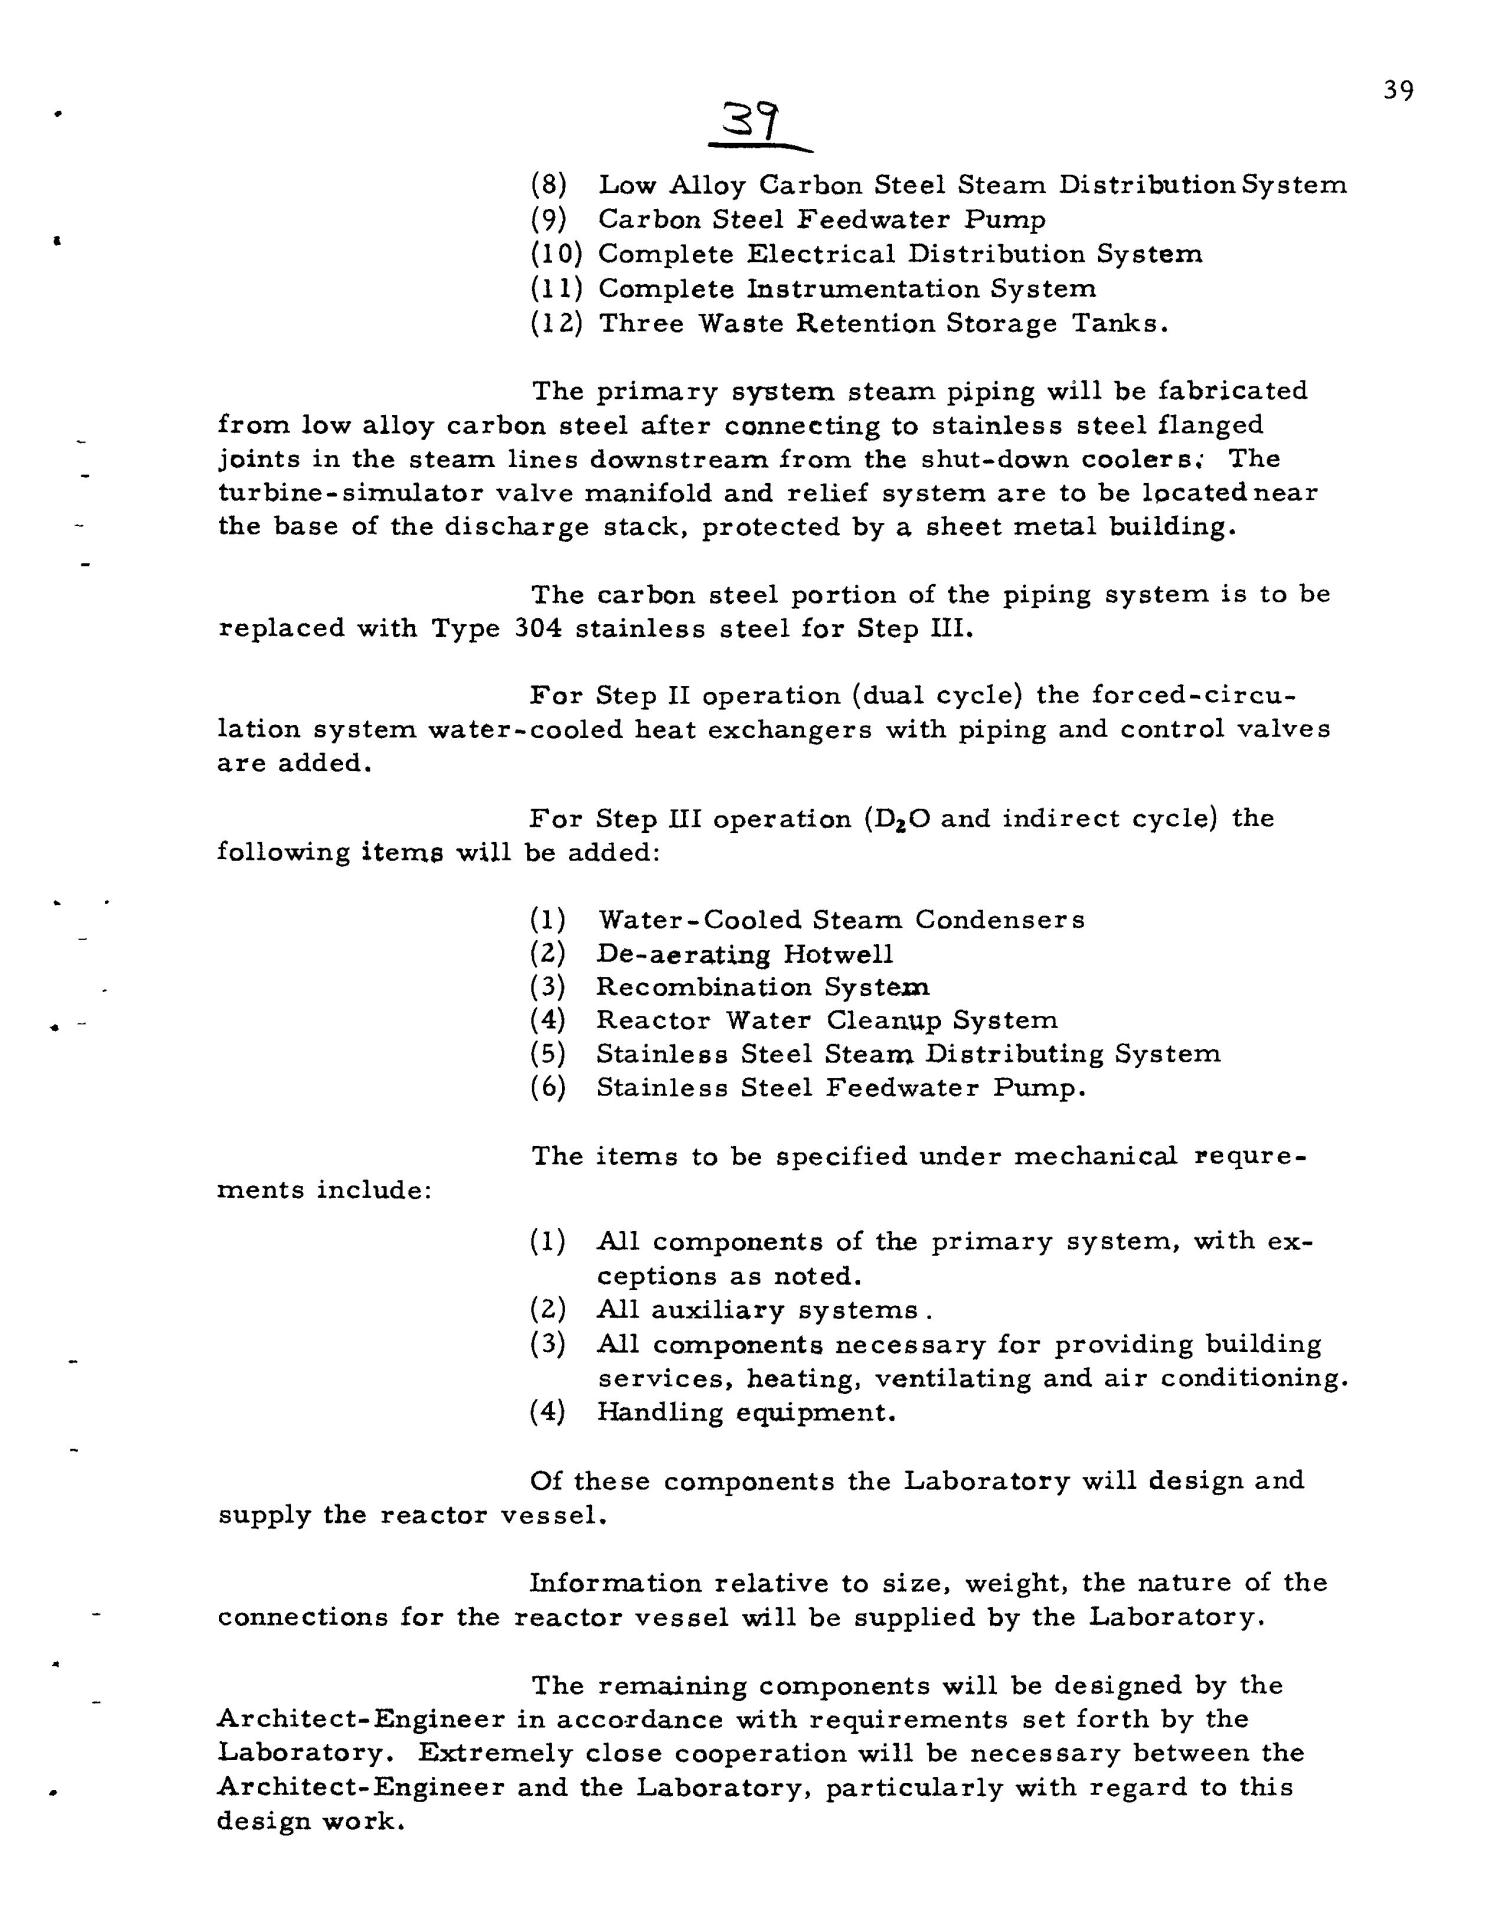 PRELIMINARY DESIGN REQUIREMENTS ARGONNE BOILING REACTOR (ARBOR) FACILITY. Revision I                                                                                                      [Sequence #]: 41 of 161